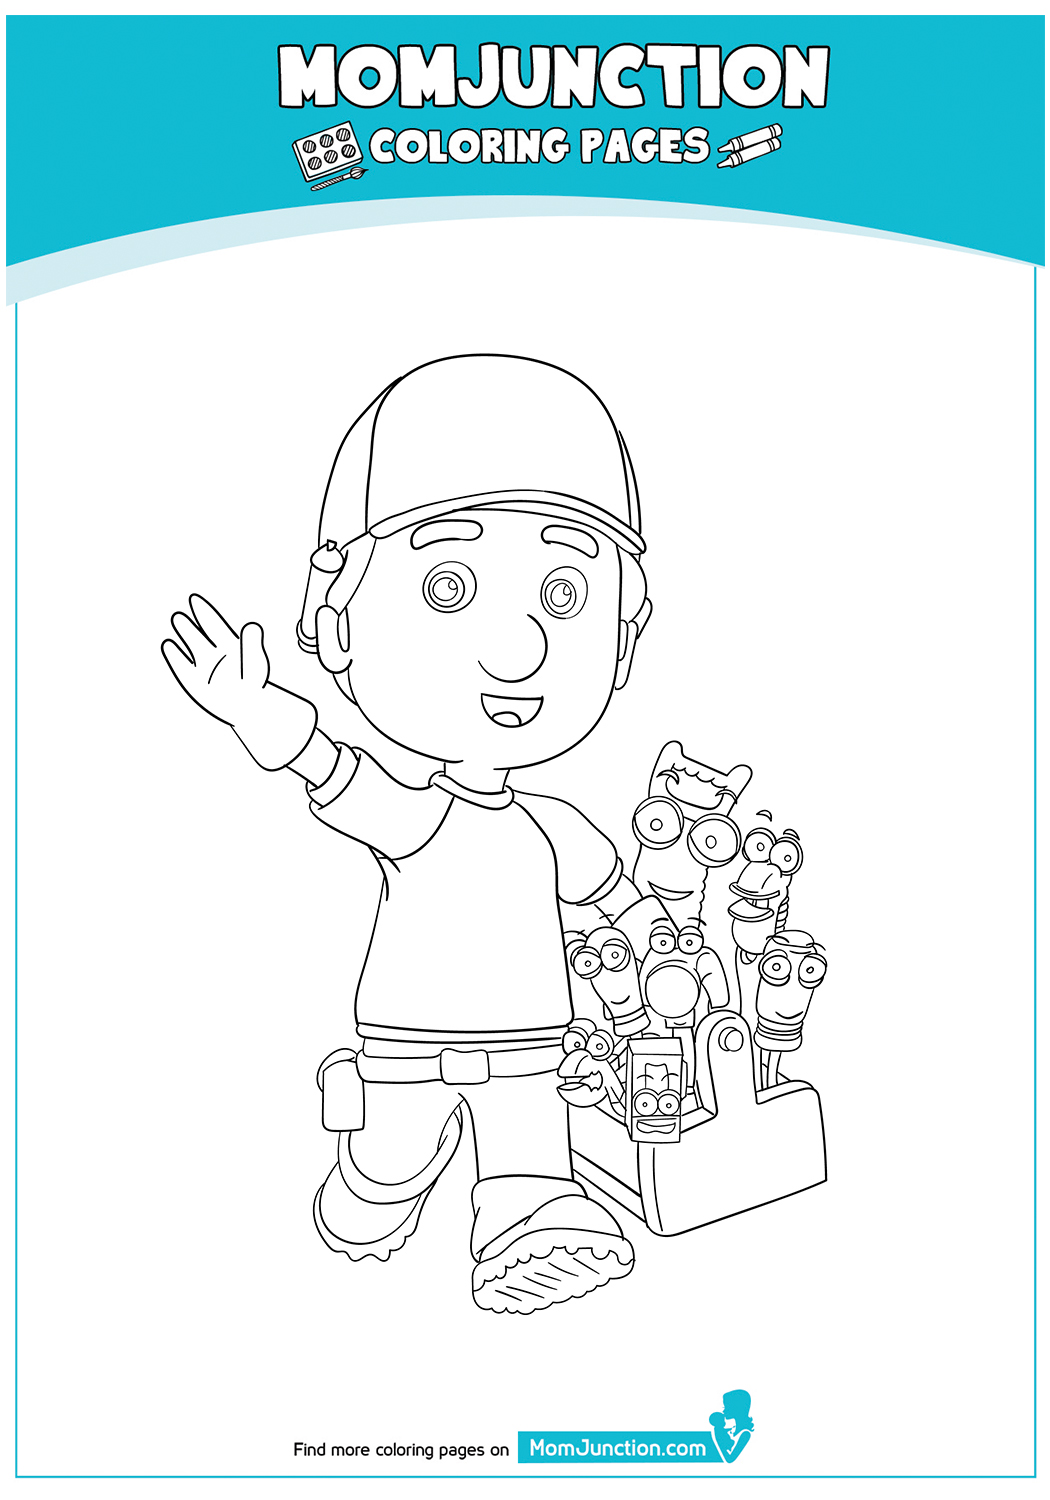 A-Homepage-Cartoon-Handy-Manny-Coloring-17